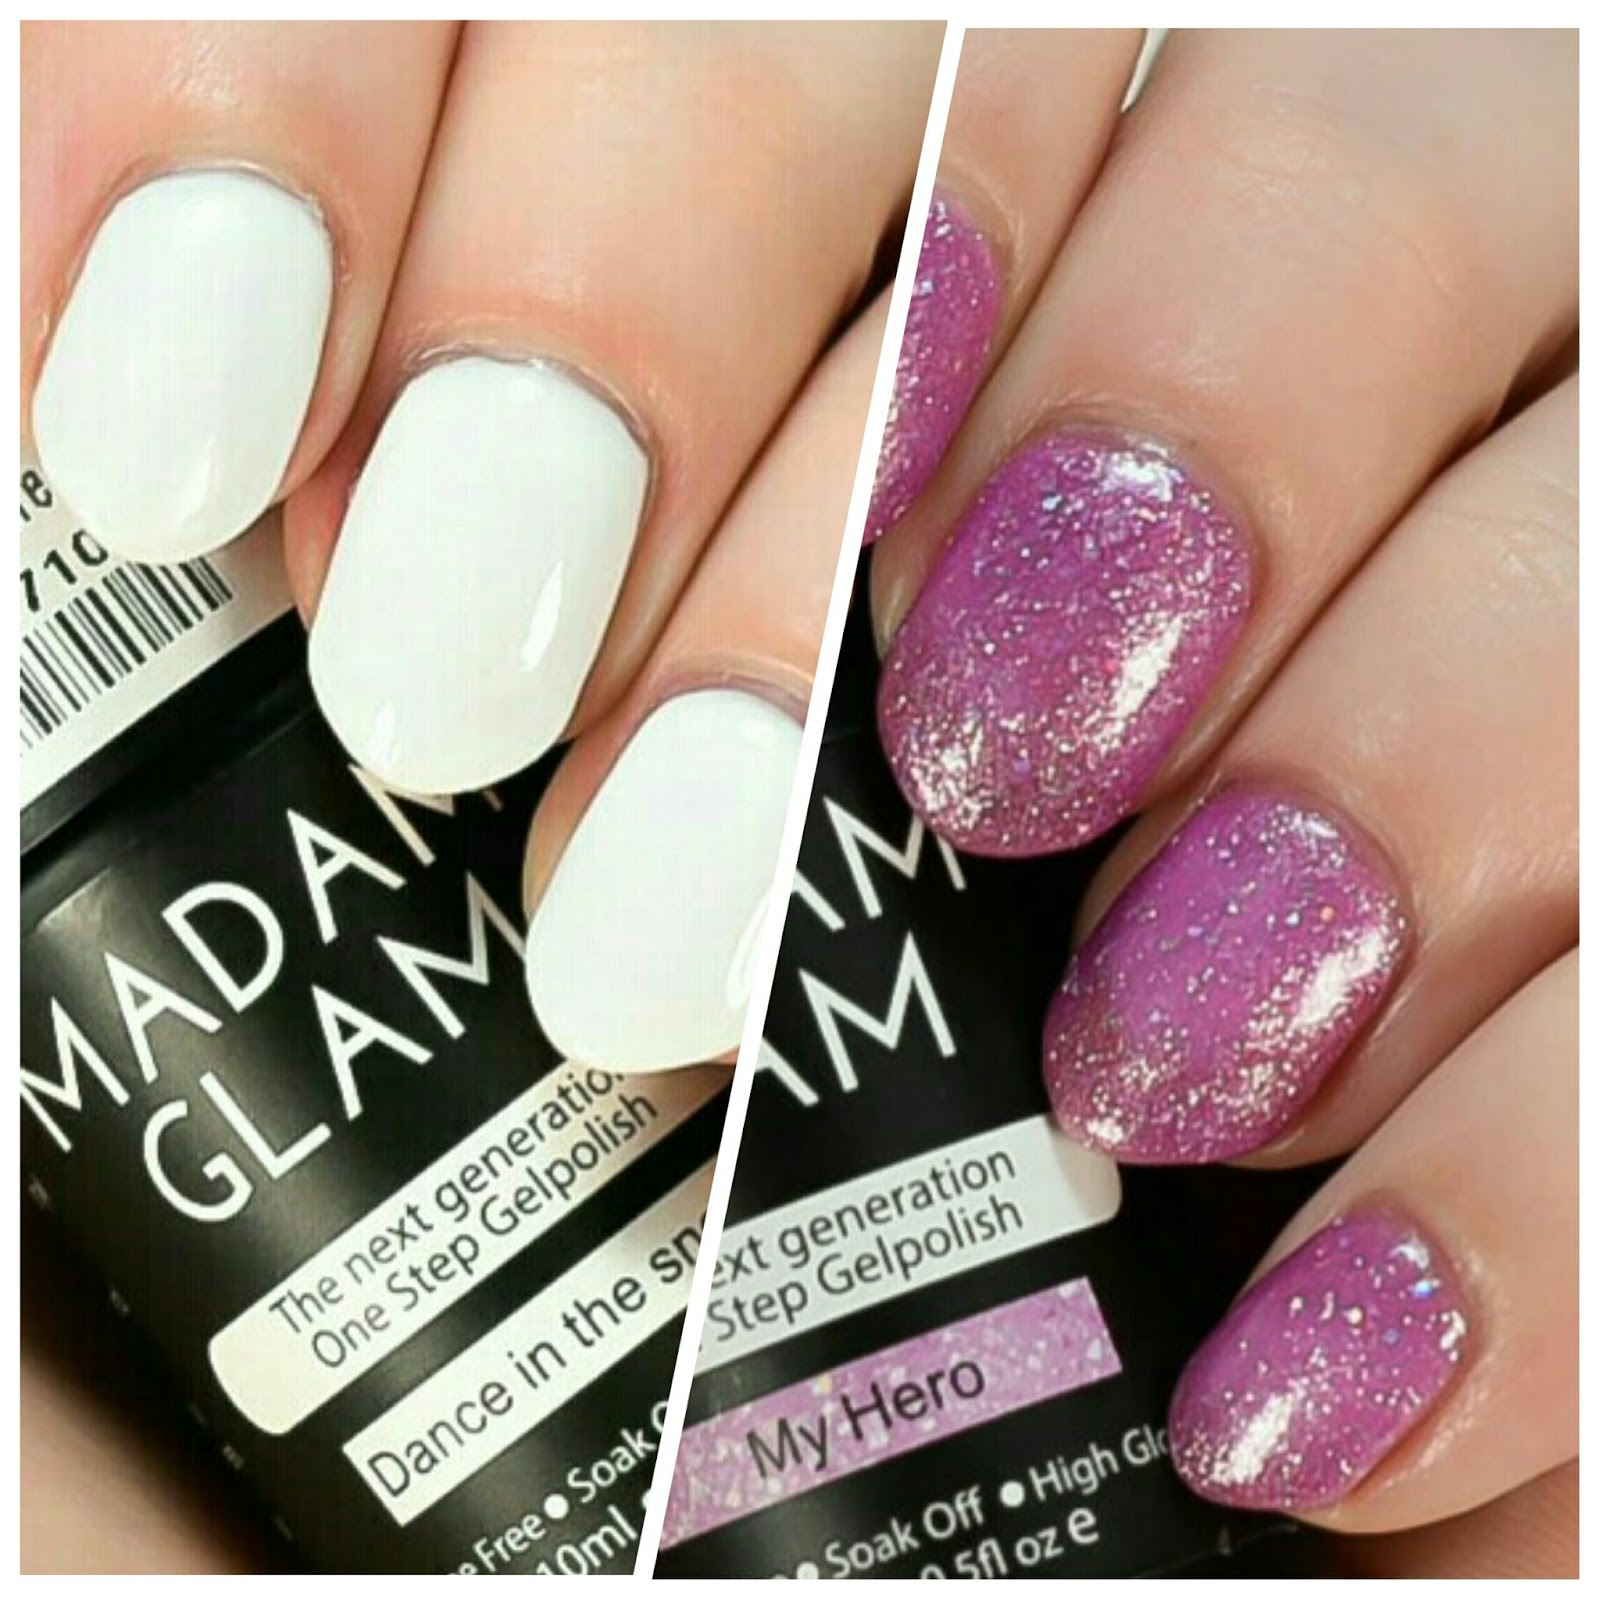 The Polished Perspective: Madam Glam One Step Gel Review